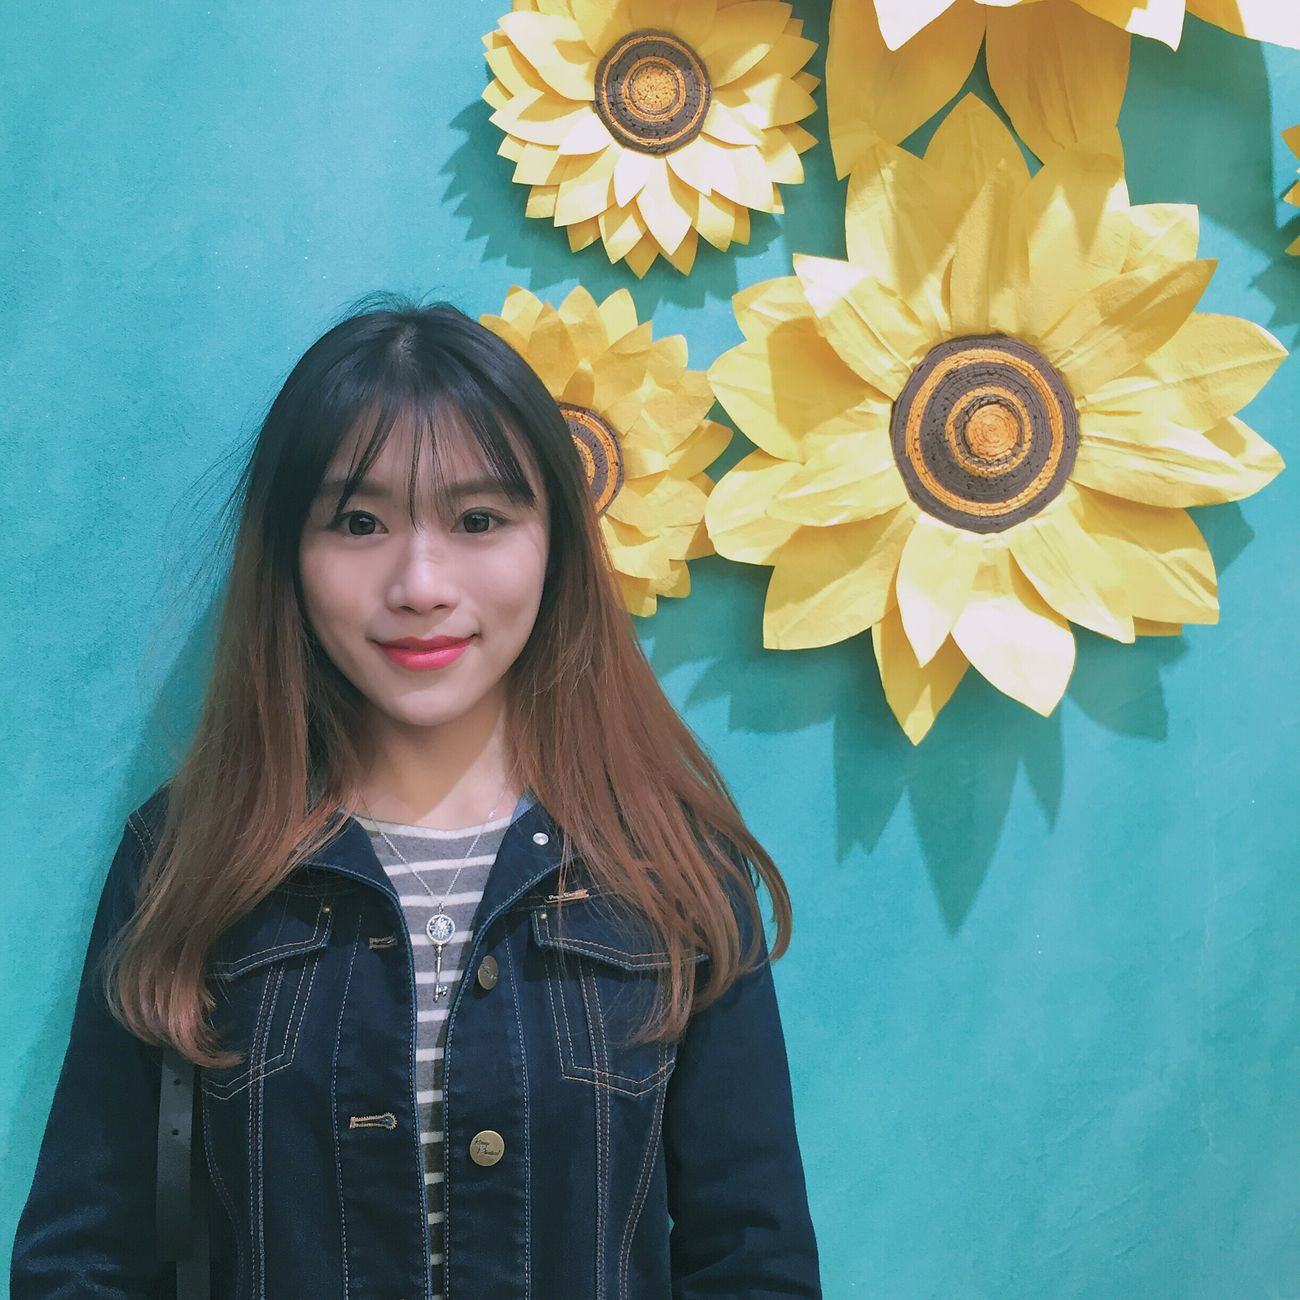 Real People Front View Flower One Person Looking At Camera Lifestyles Indoors  Young Women Portrait Girl Gallery Cute Standing Smiling Self Portrait